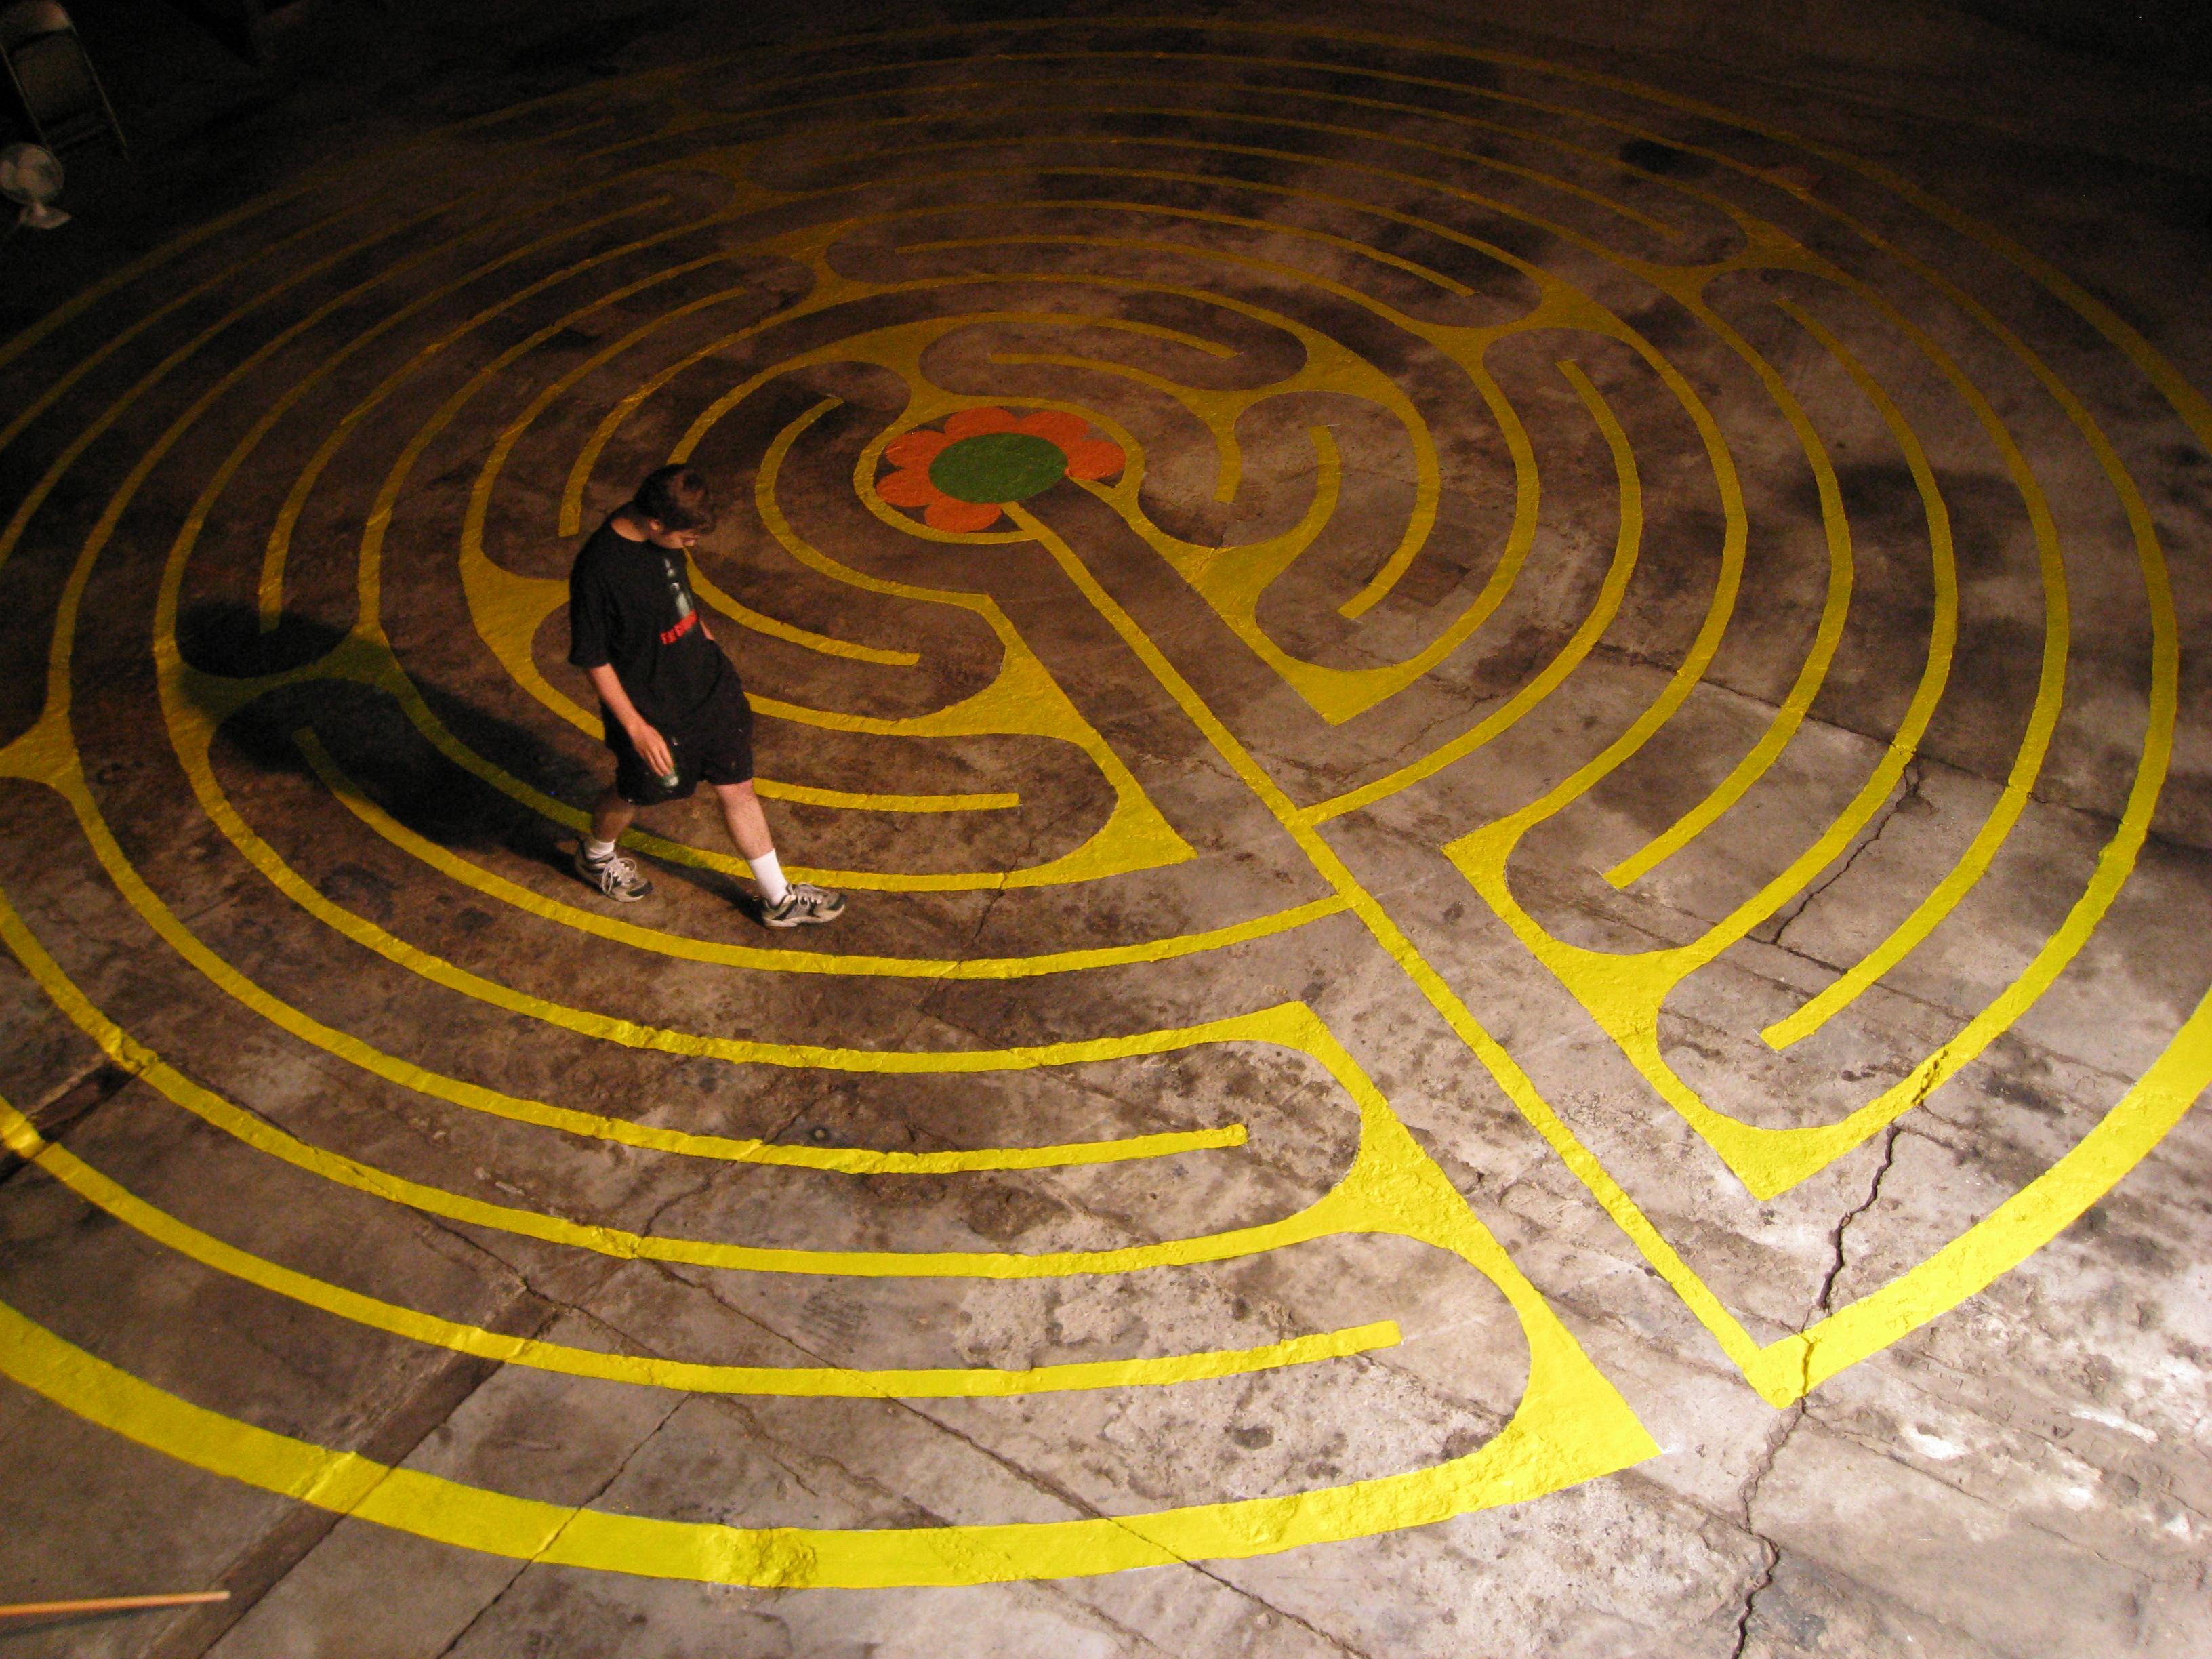 The great labyrinth is painted on the floor of the Great Barn.